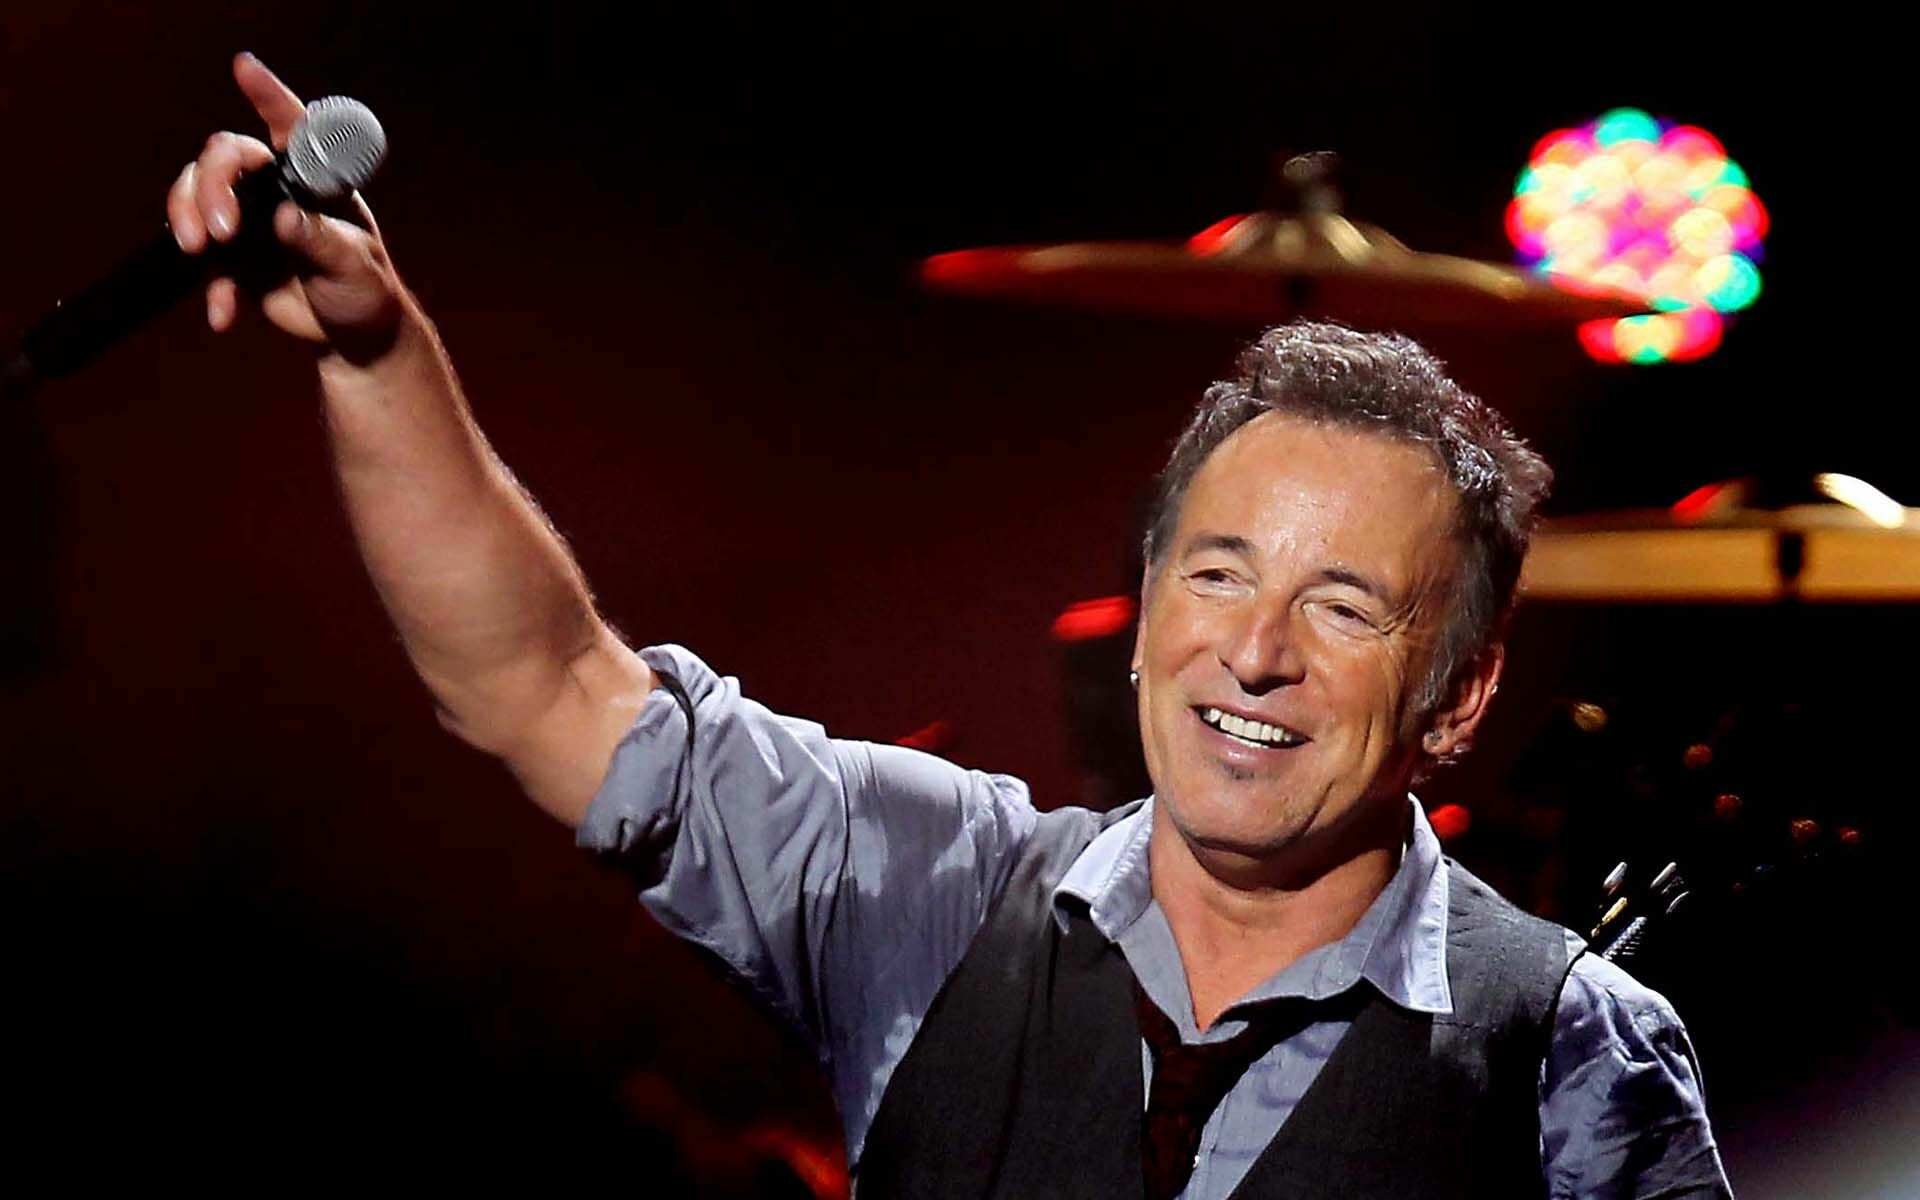 Psicosoft - Bruce Springsteen is an Human Resources guru